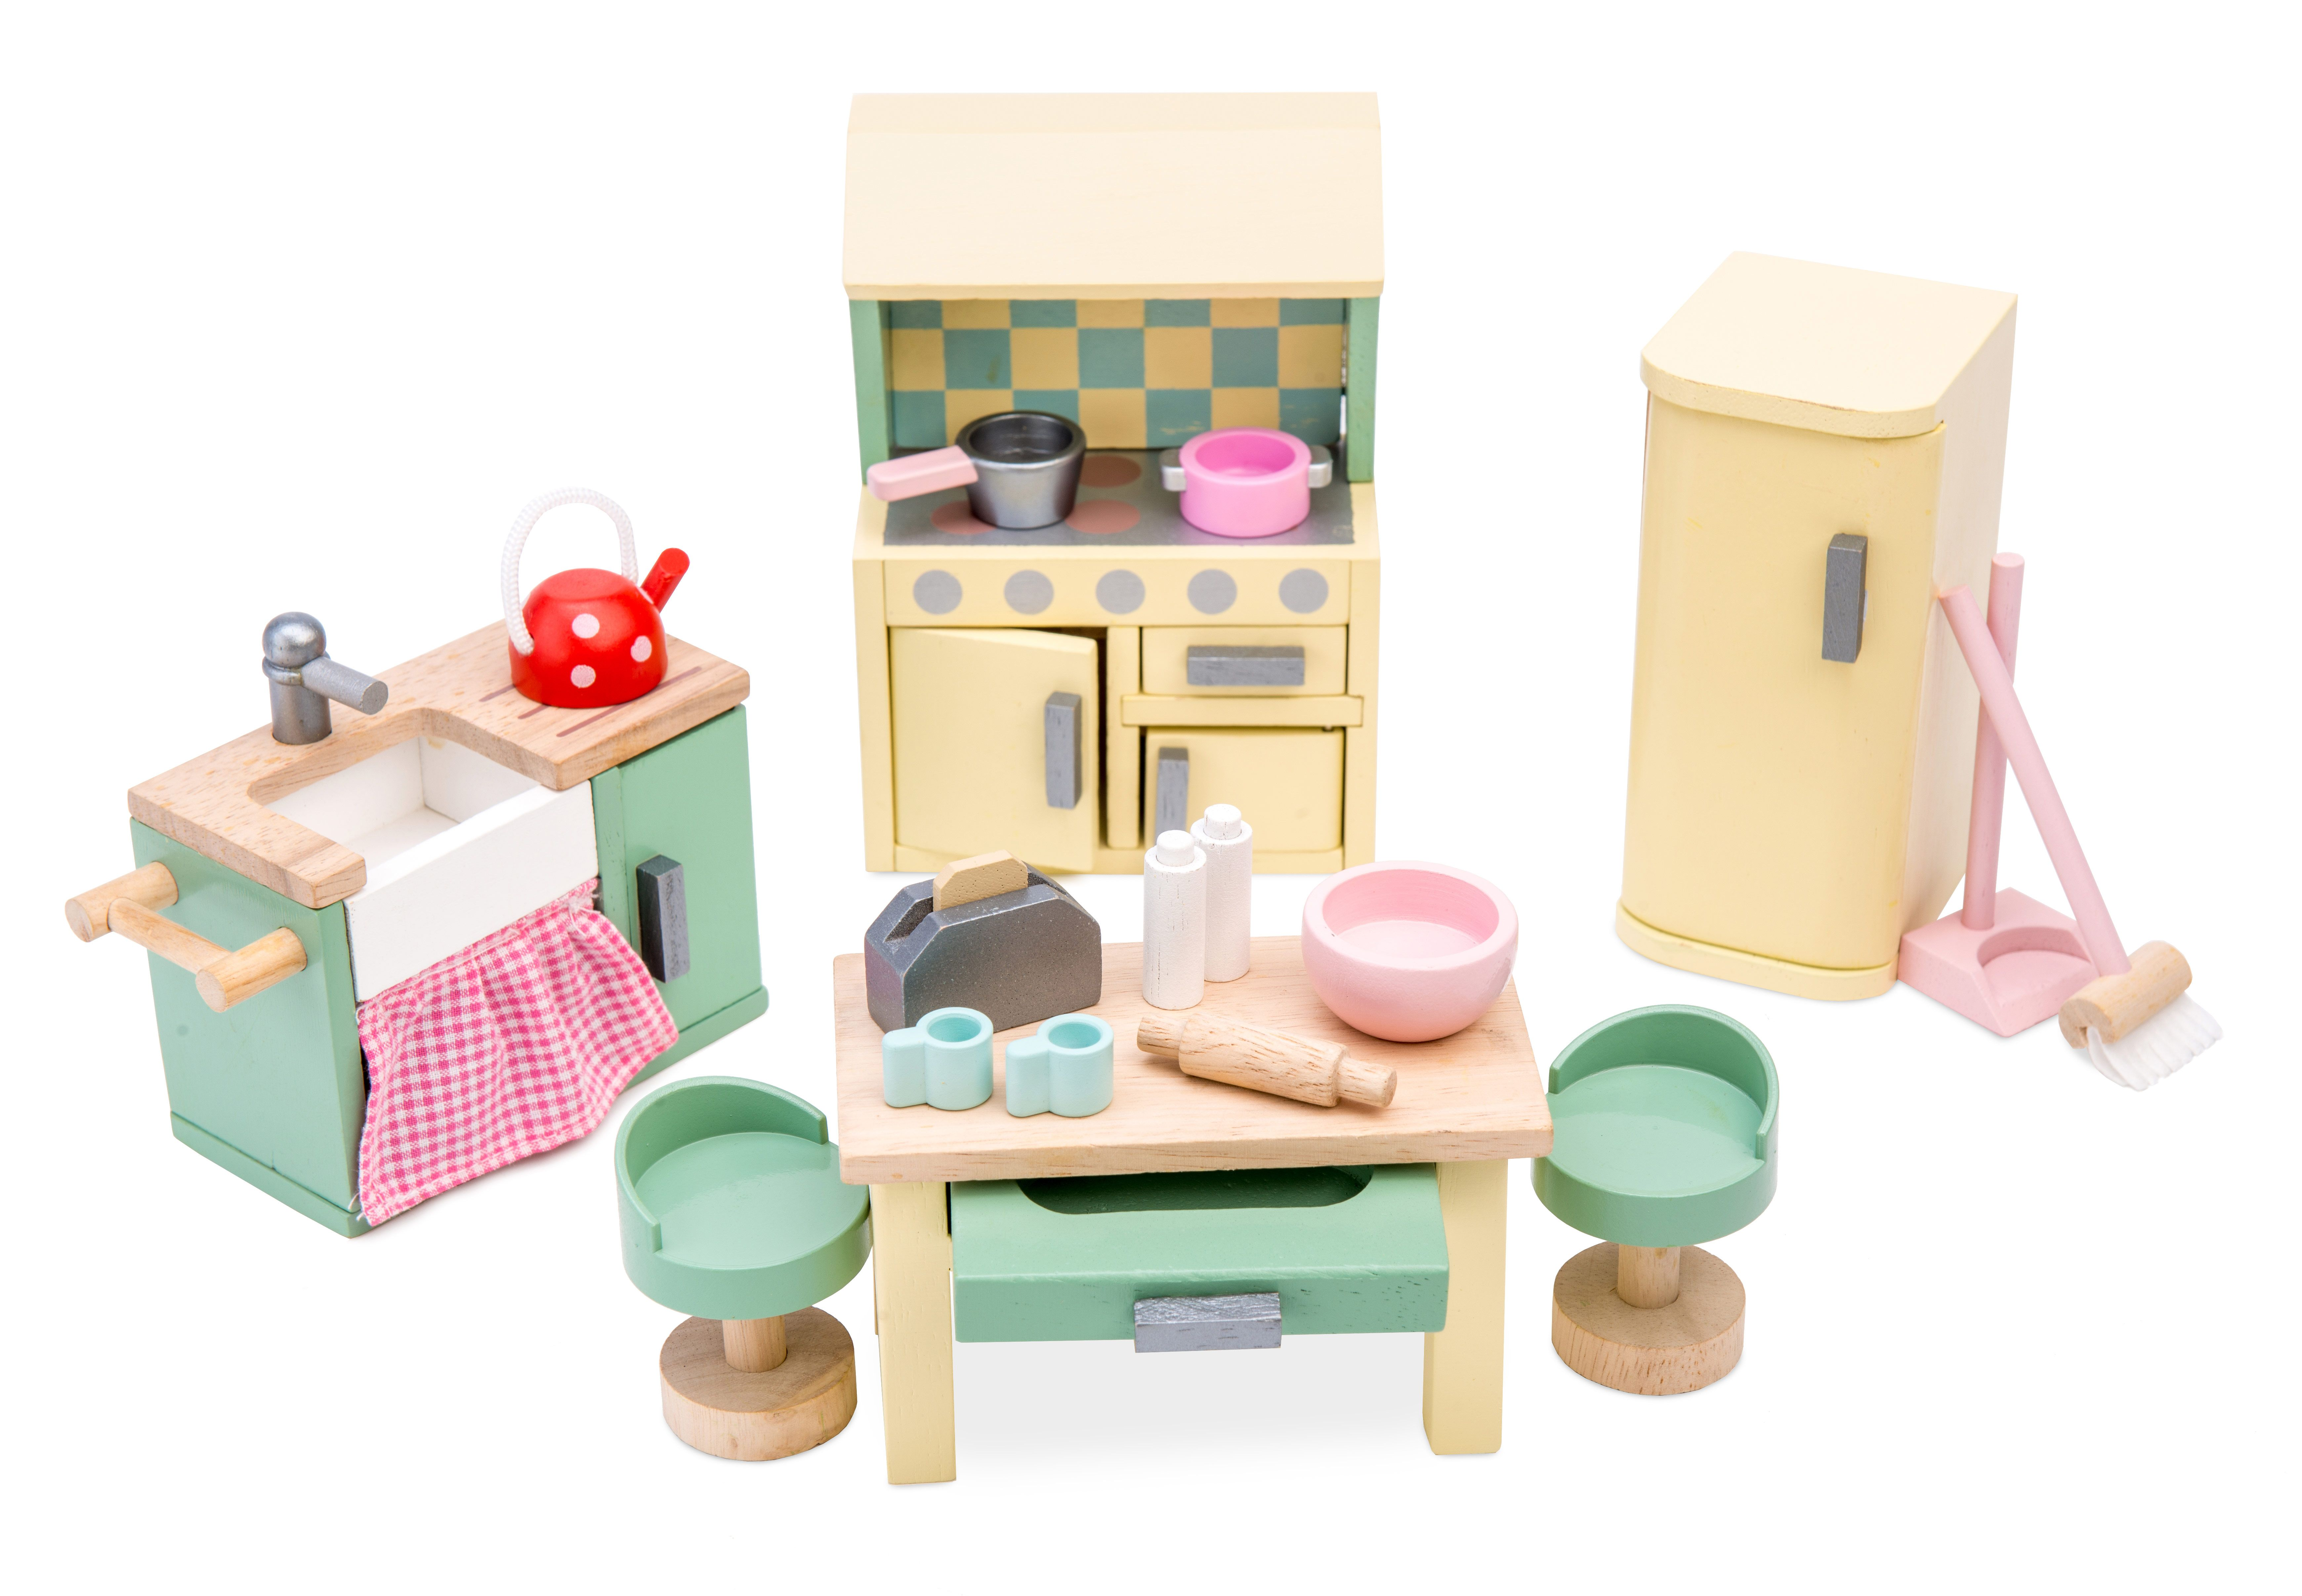 A Painted Wooden Furniture Set By Le Toy Van Daisylane Dollshouse Furniture Kitchen Cooker Toys Wooden To Furniture Wooden Dollhouse Kids Wooden Toys